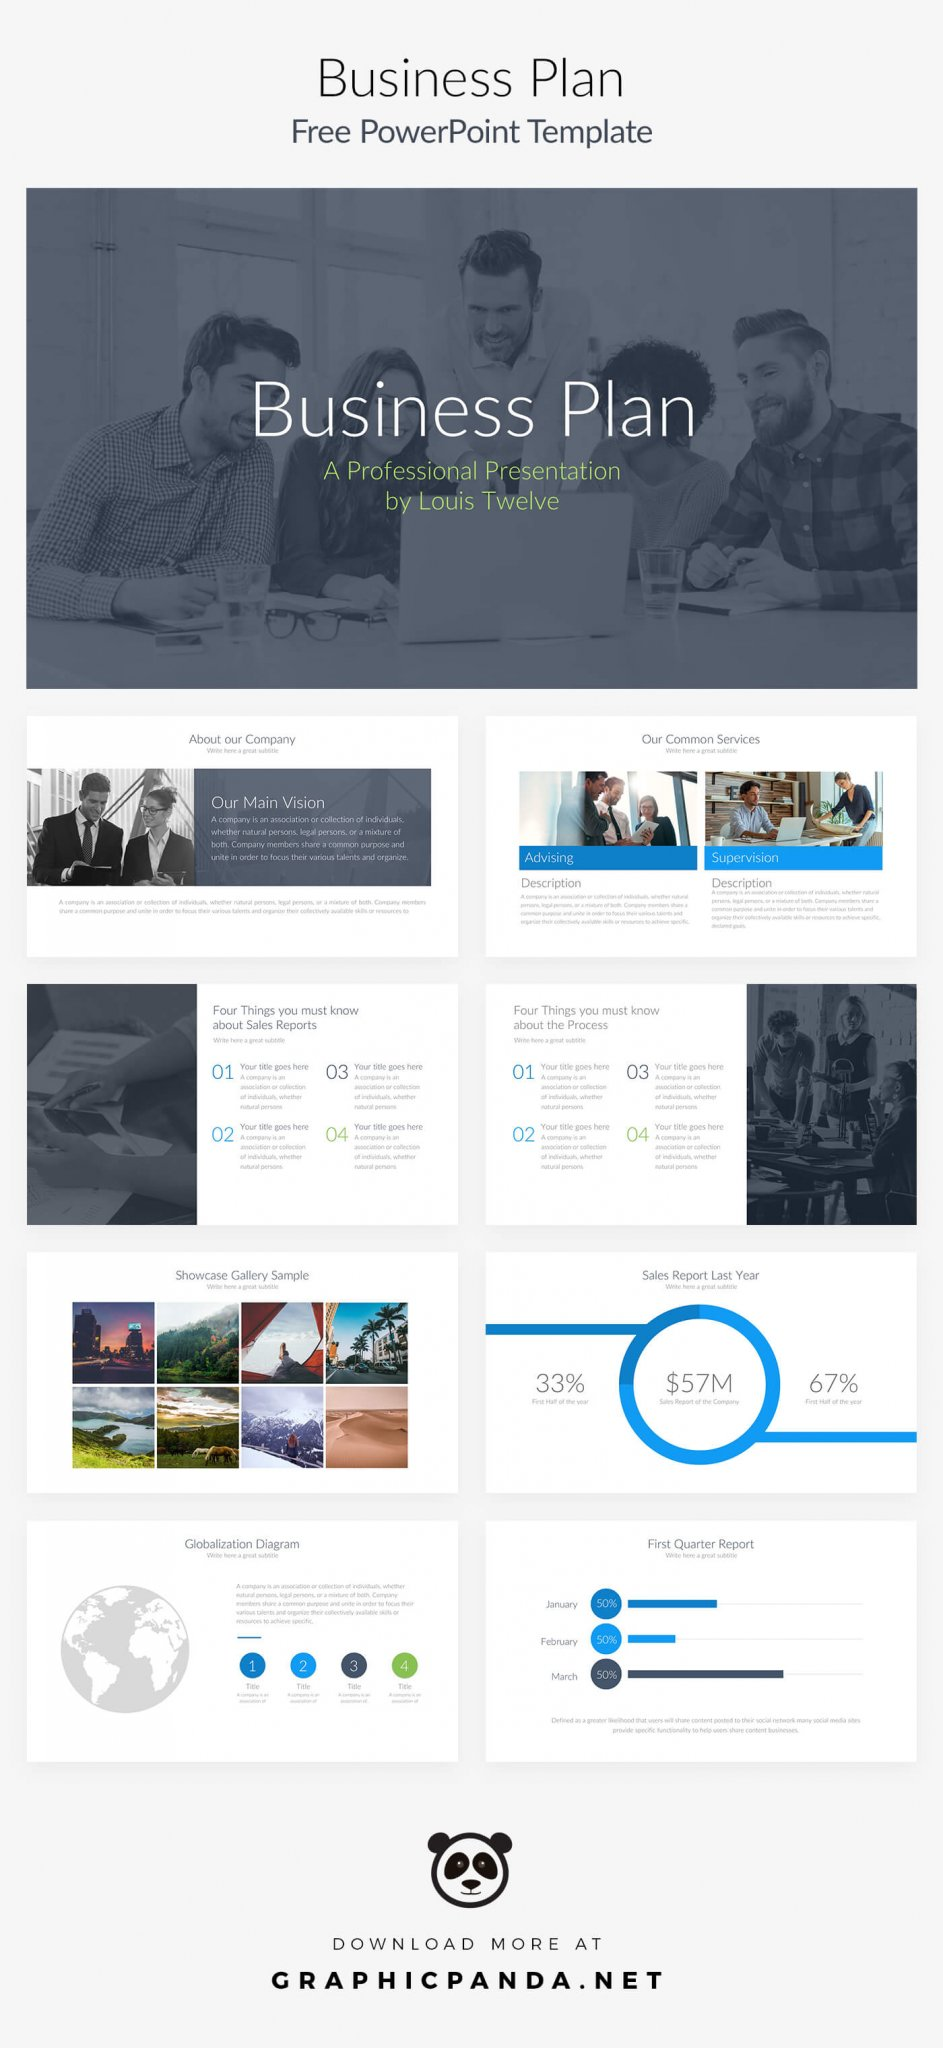 free business plan powerpoint presentation template, Modern powerpoint